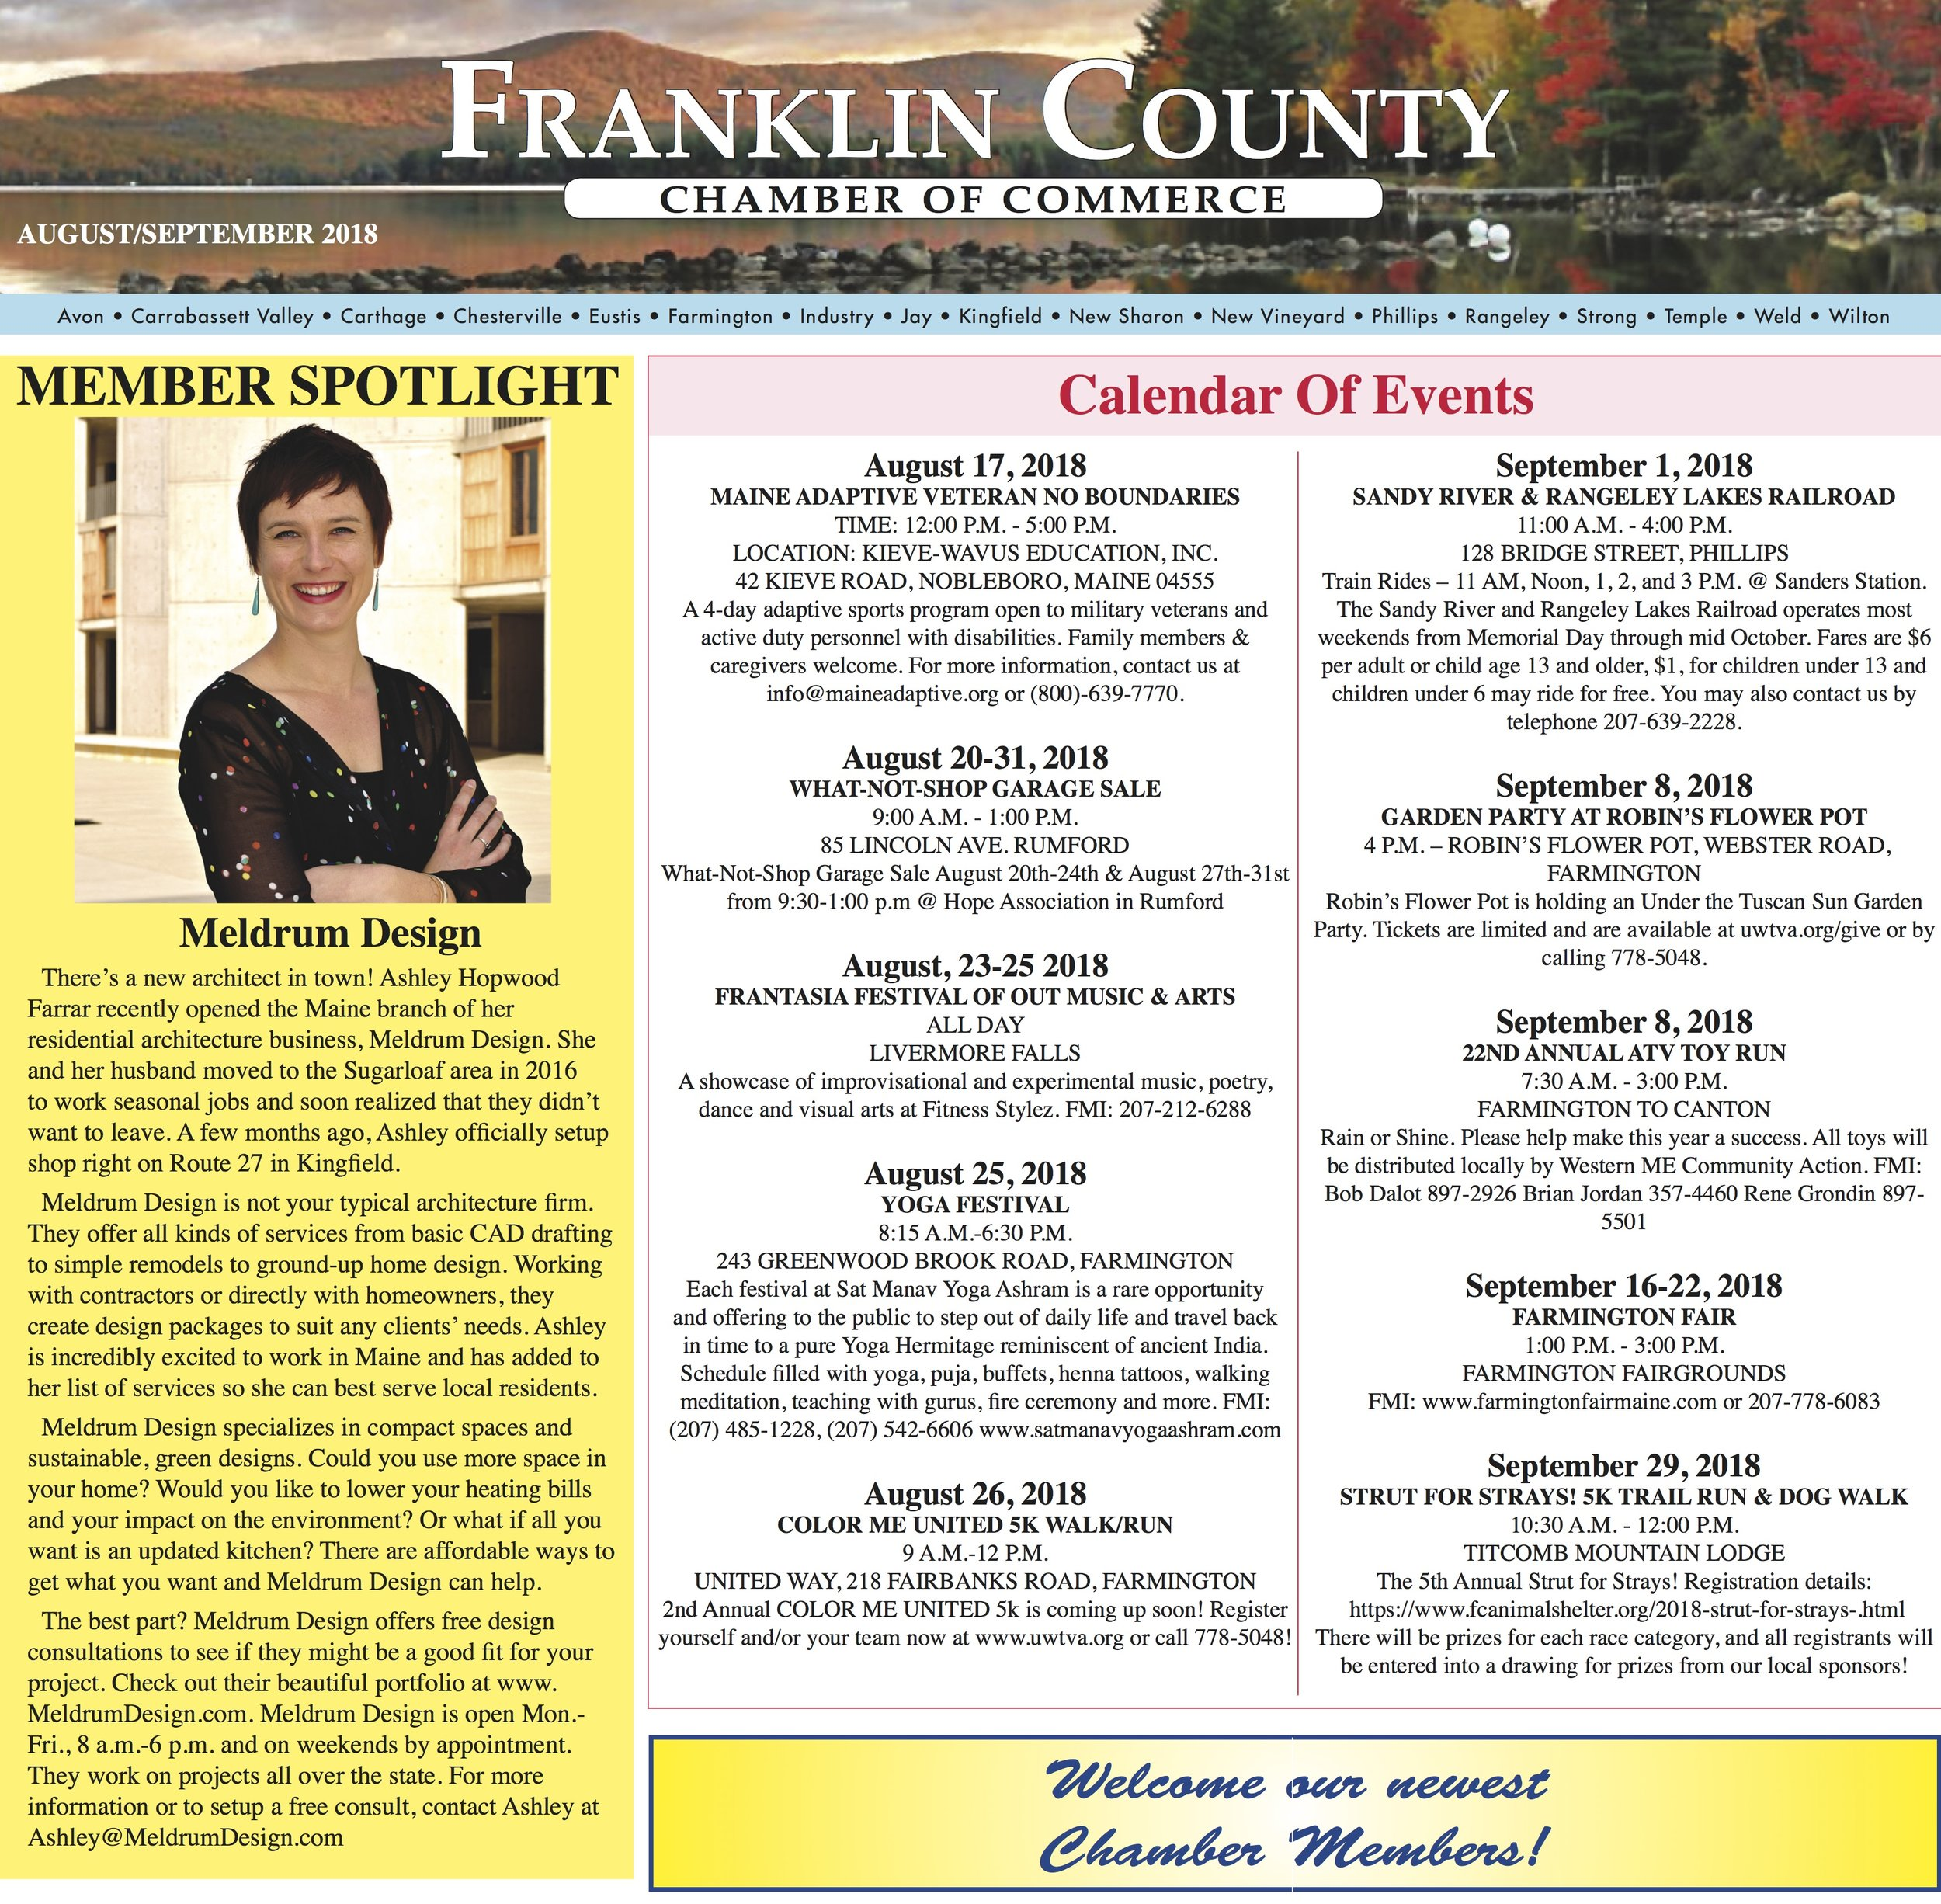 Living in a rural place, I sometimes struggle to connect with like-minded business professionals. 🌲 The Franklin County Chamber of Commerce has been an amazing resource. 👍🏻 I love them and apparently they like me too! 😍 I'm Chamber of Commerce famous! ⭐️